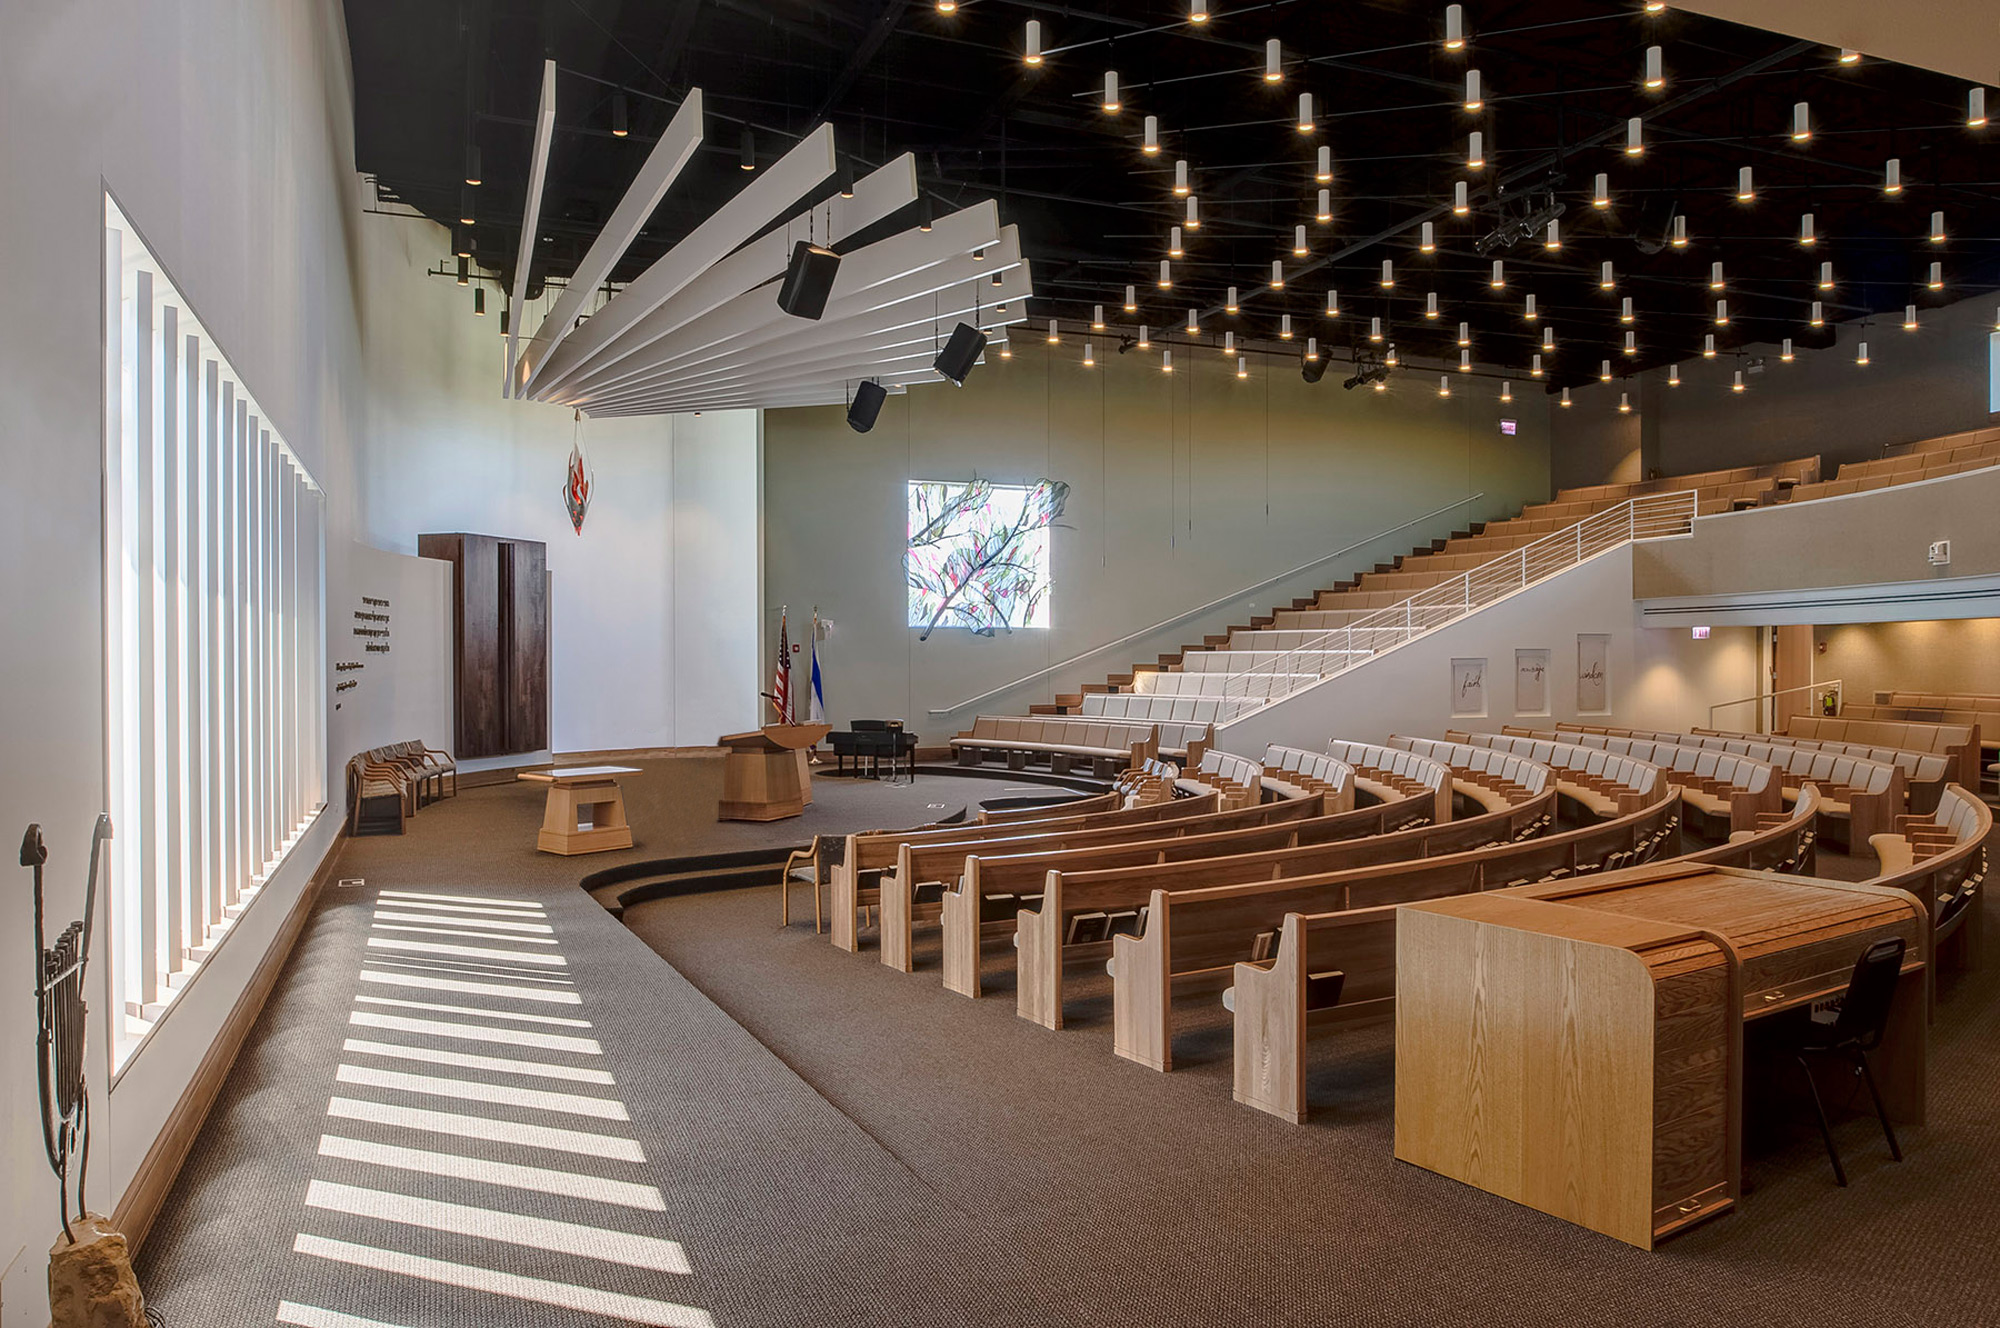 Synagogue sanctuary with different kinds of seating areas, ceiling lights, and the eternal flame